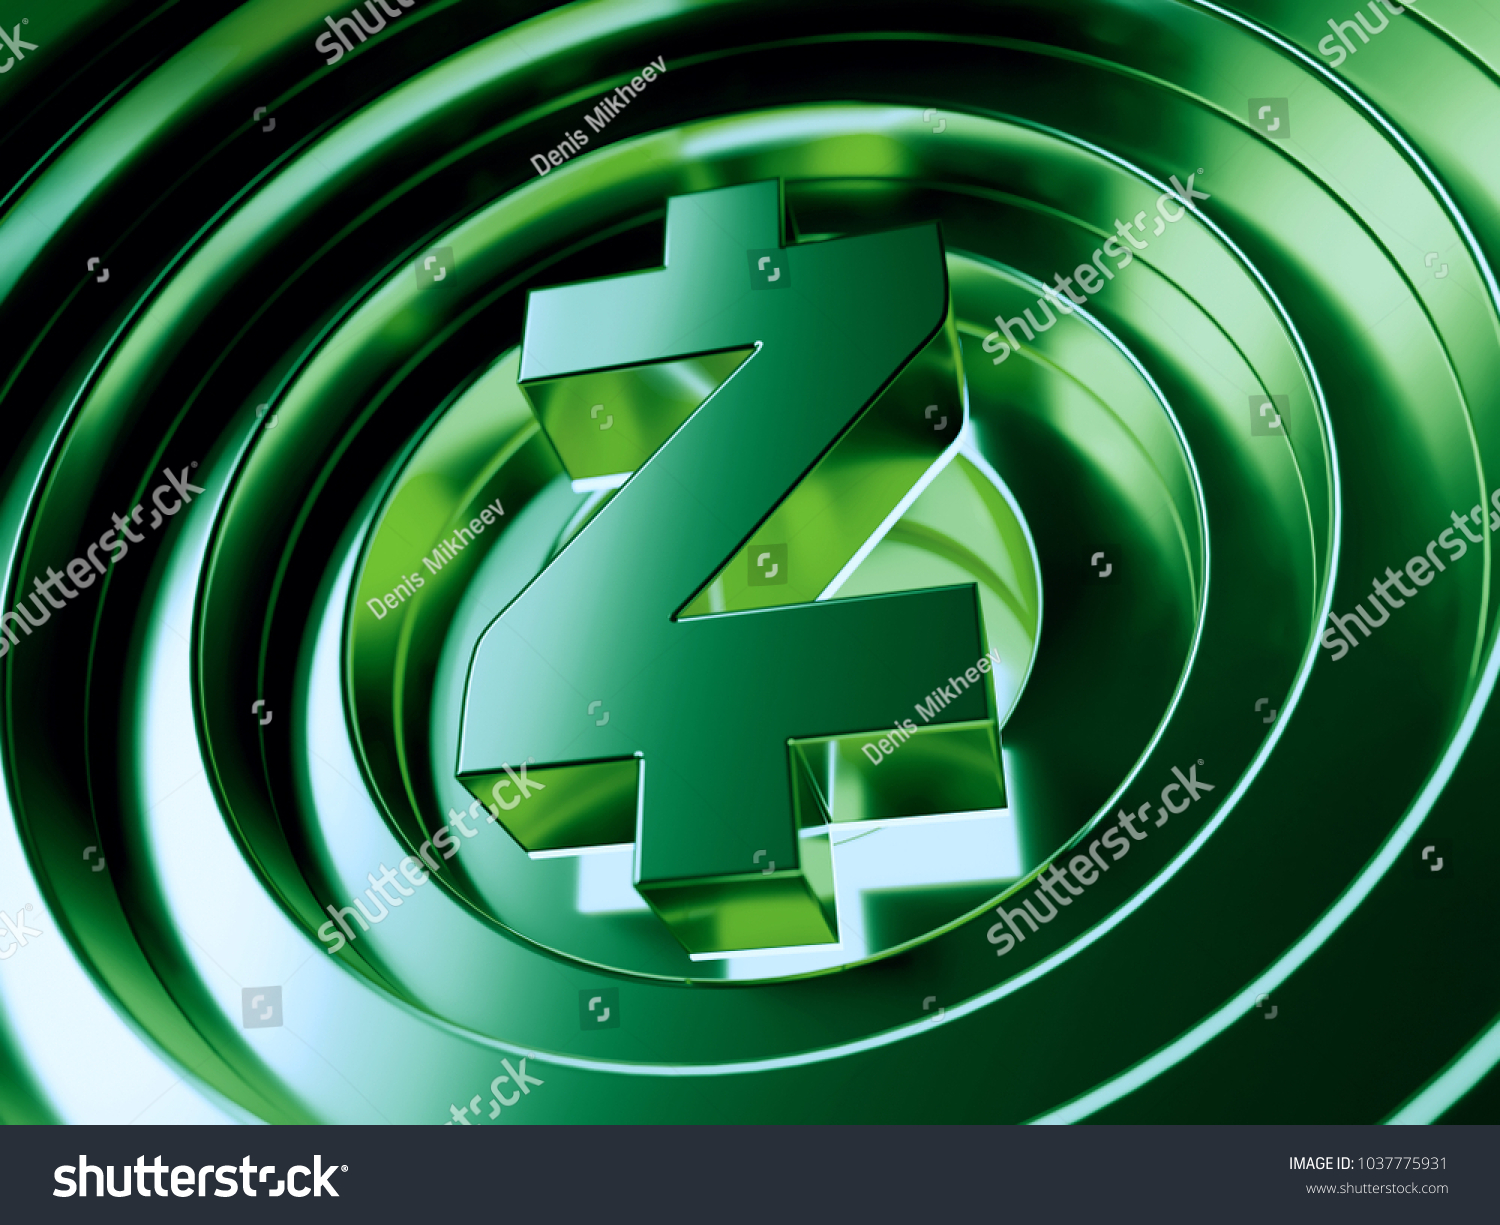 Zcash Crypto Currency Symbol Center Green Stock Illustration